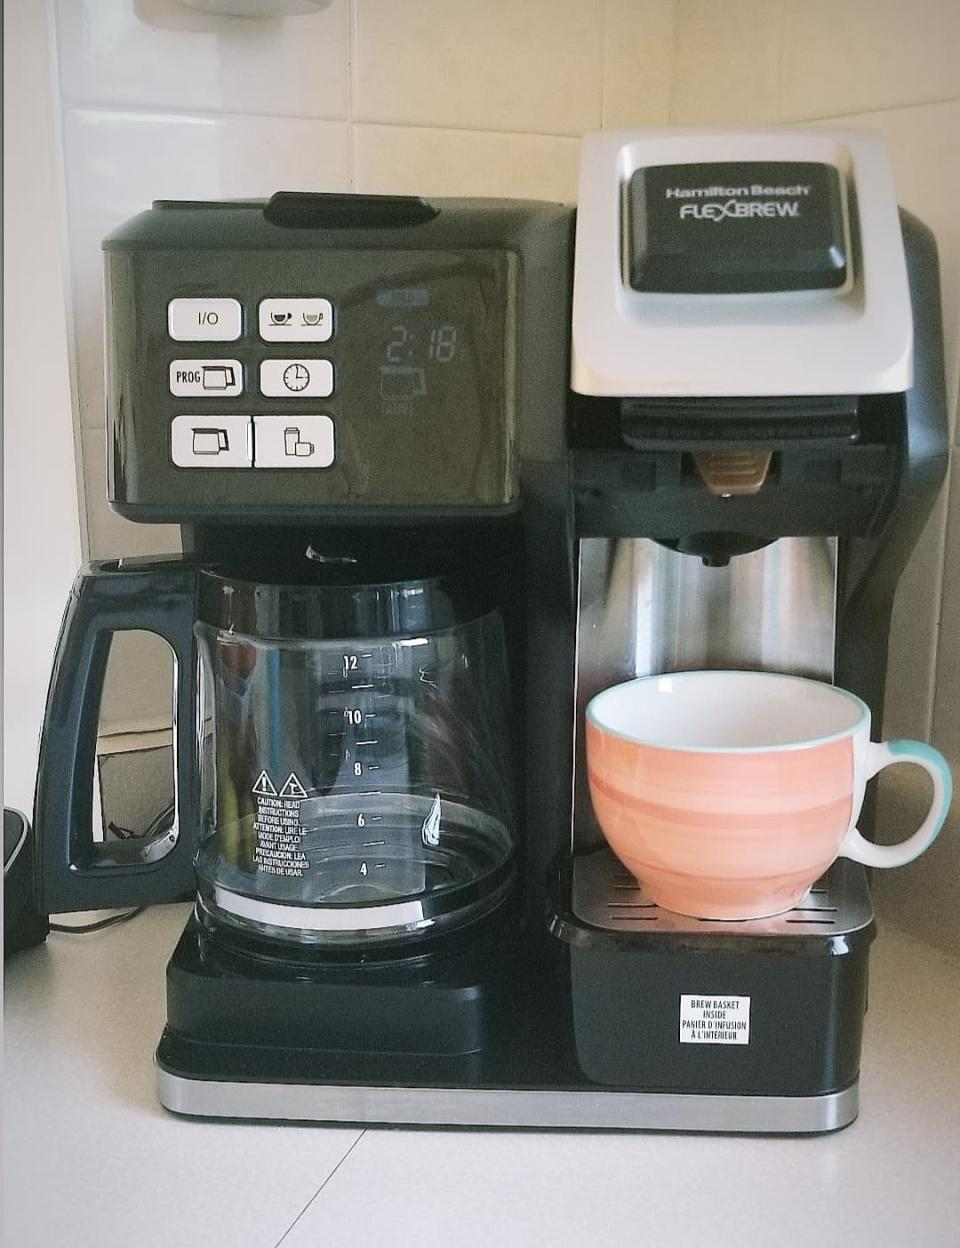 Hamilton Beach FlexBrew Coffee Maker. Image via Sarah Rohoman.